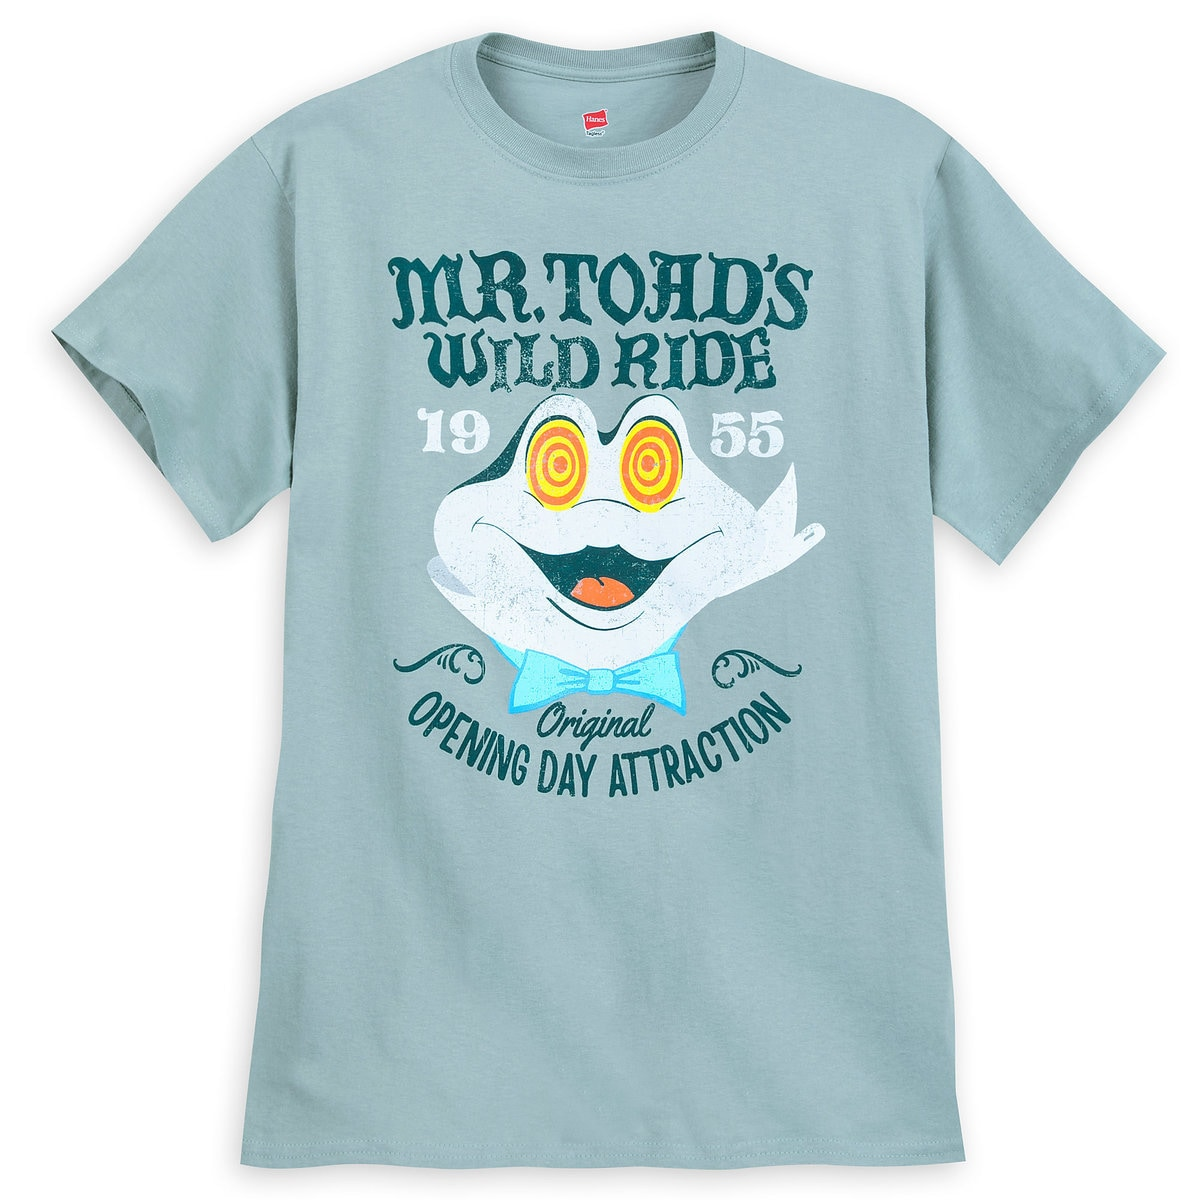 d8055e47f320c Product Image of Mr. Toad's Wild Ride T-Shirt for Adults # 1